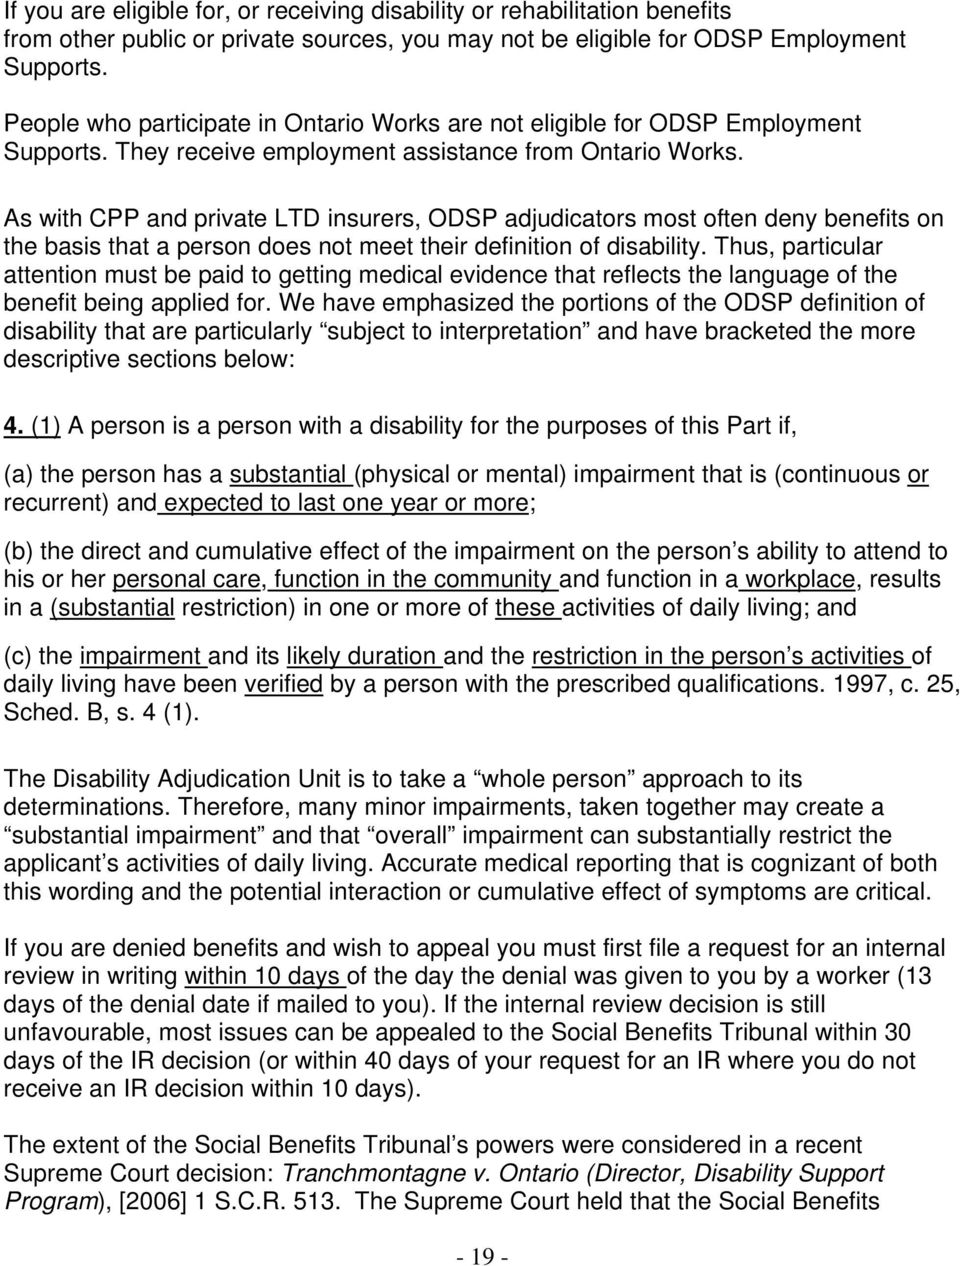 As with CPP and private LTD insurers, ODSP adjudicators most often deny benefits on the basis that a person does not meet their definition of disability.